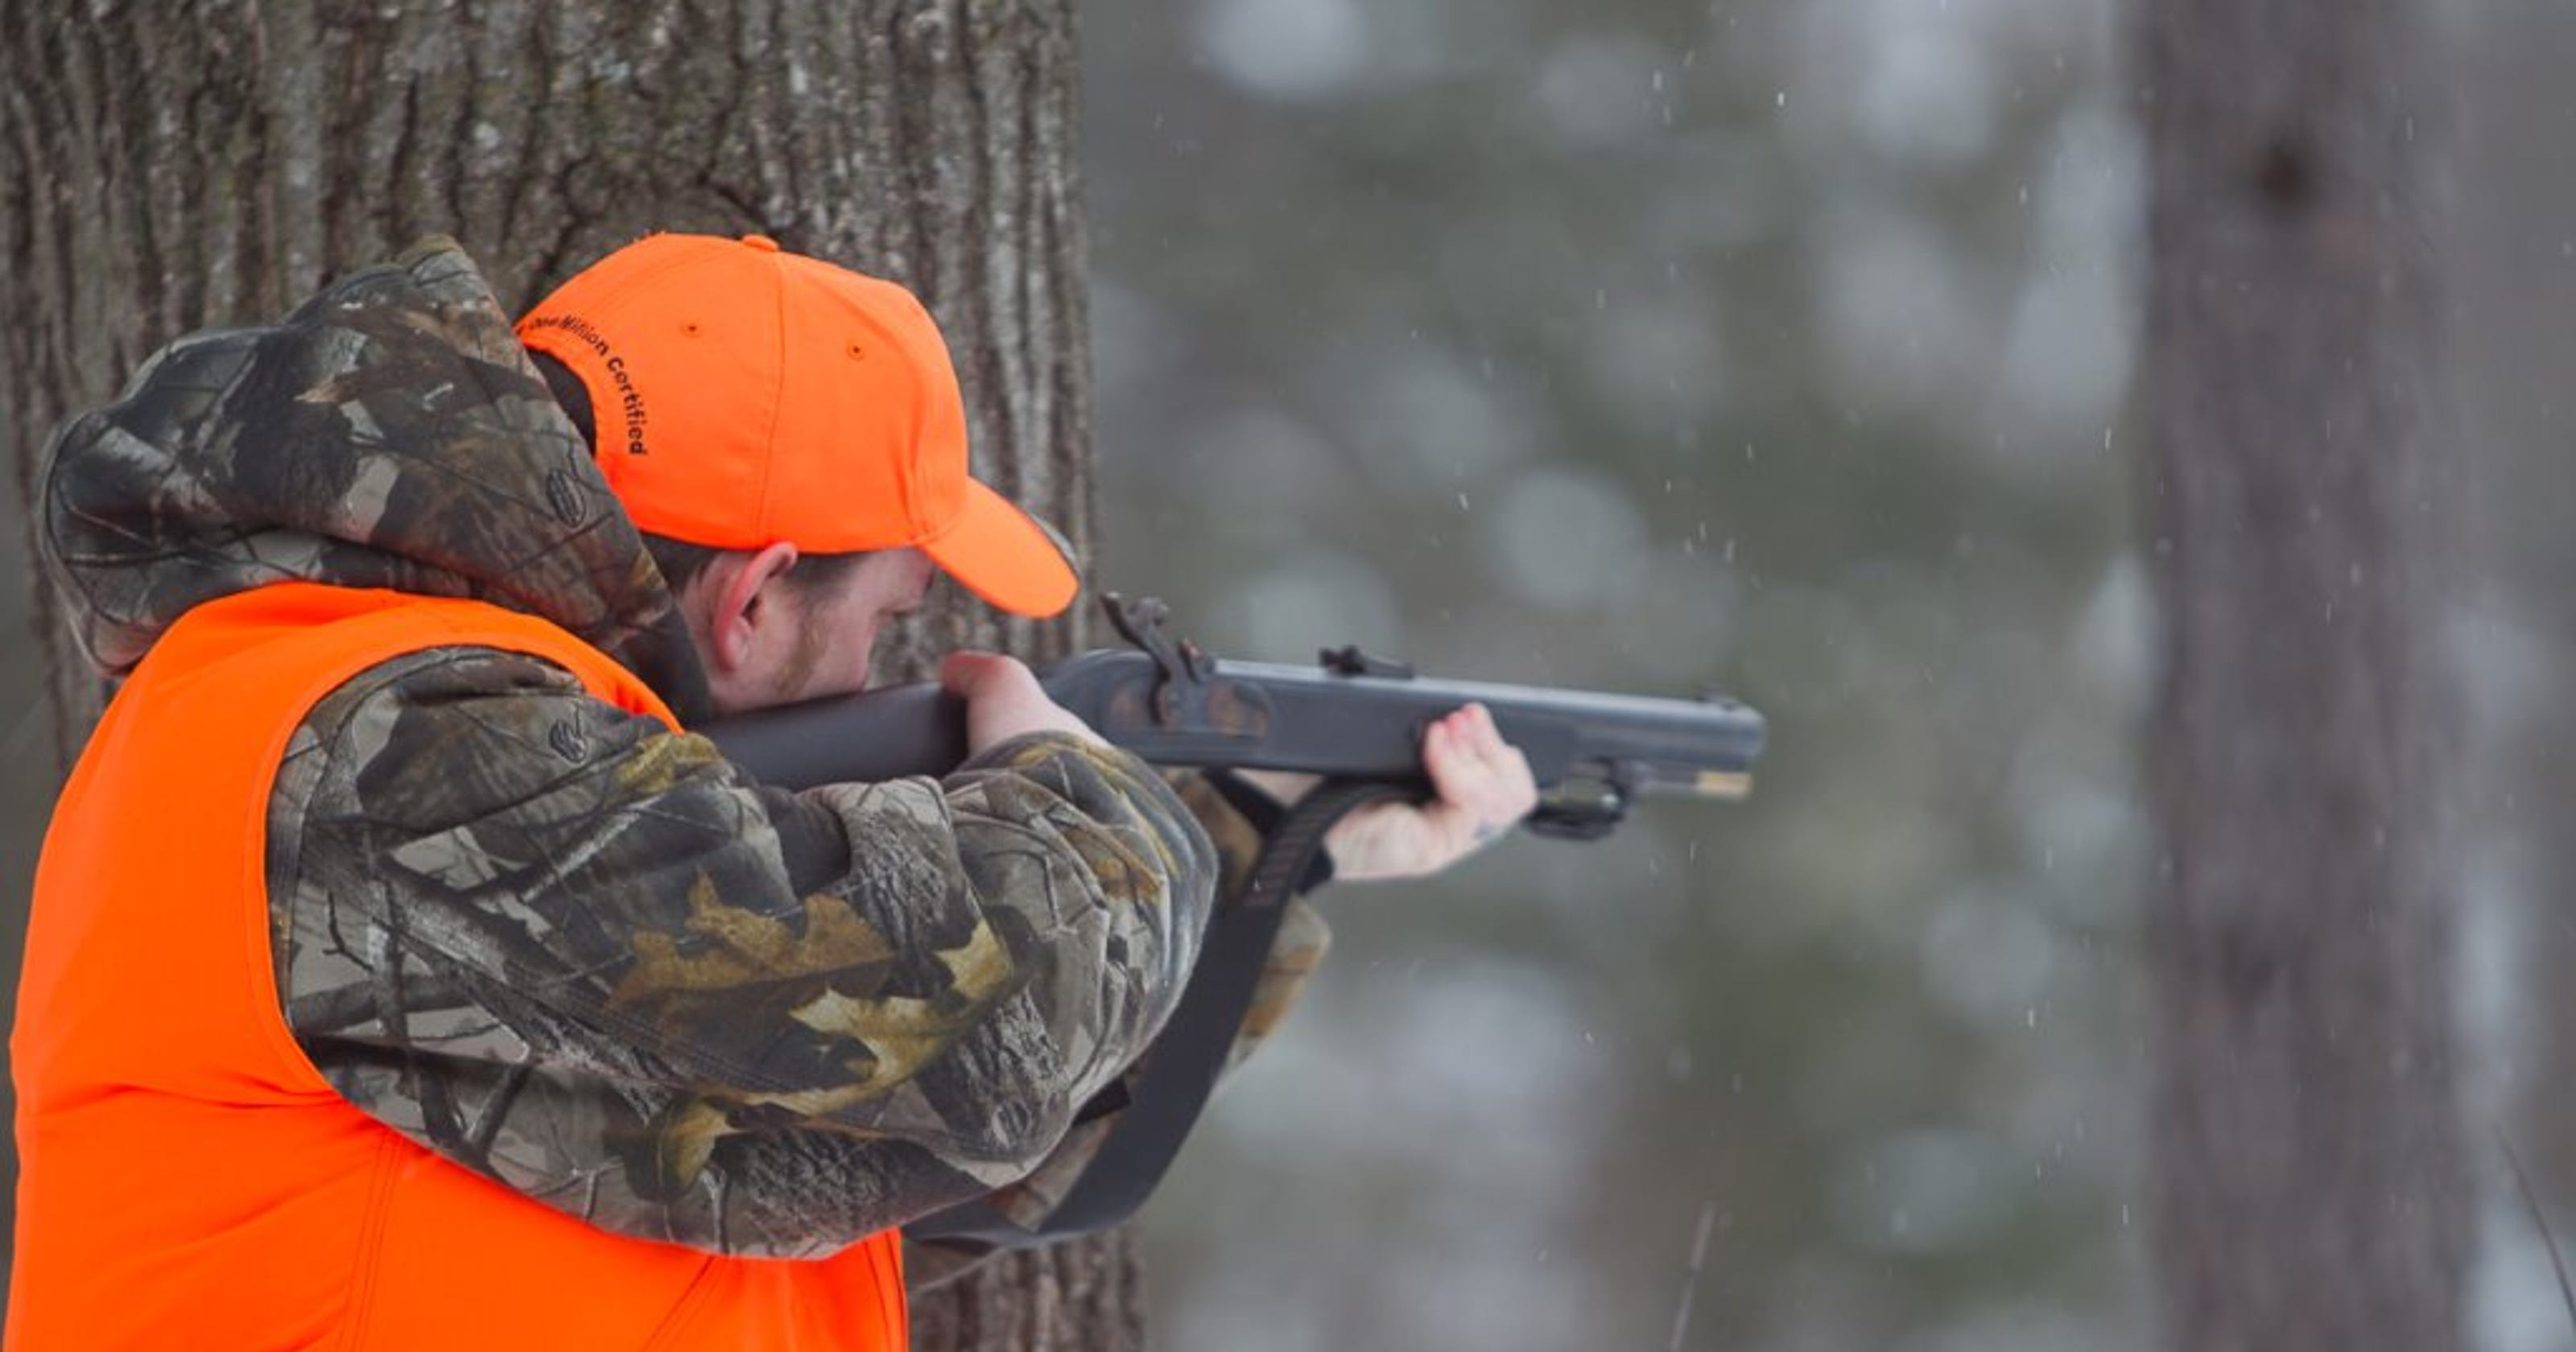 Hunters can feed hungry, win muzzleloader by donating deer